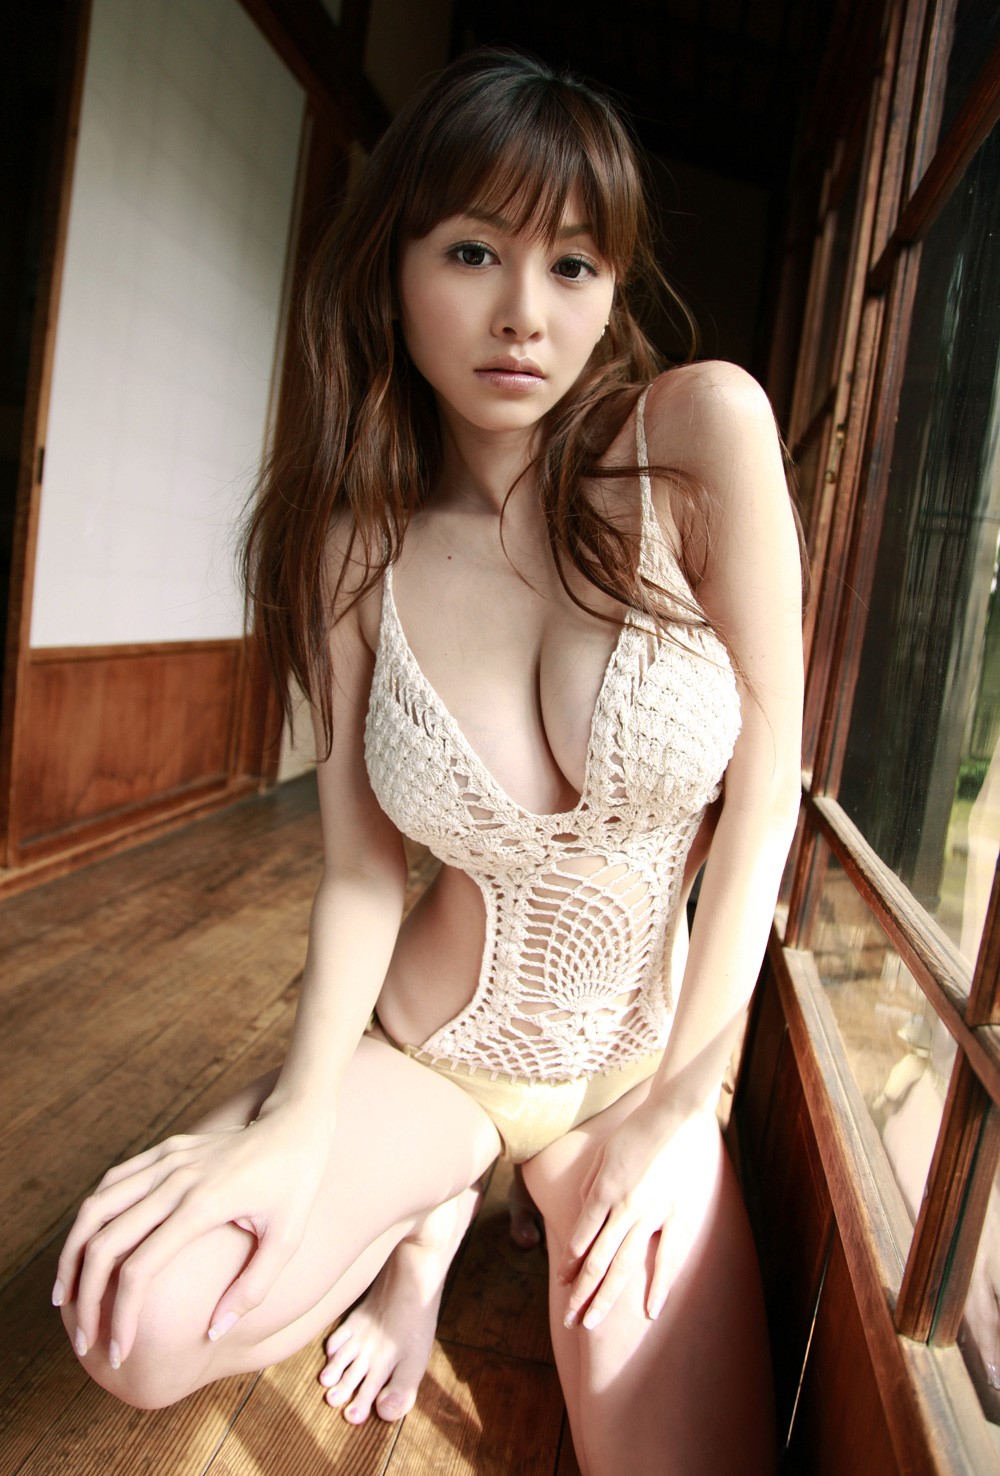 asian single women in catherine Find a loving filipina or asian girlfriend from asia with the use of our online  join now and view profiles of beautiful asian women and men in search of .